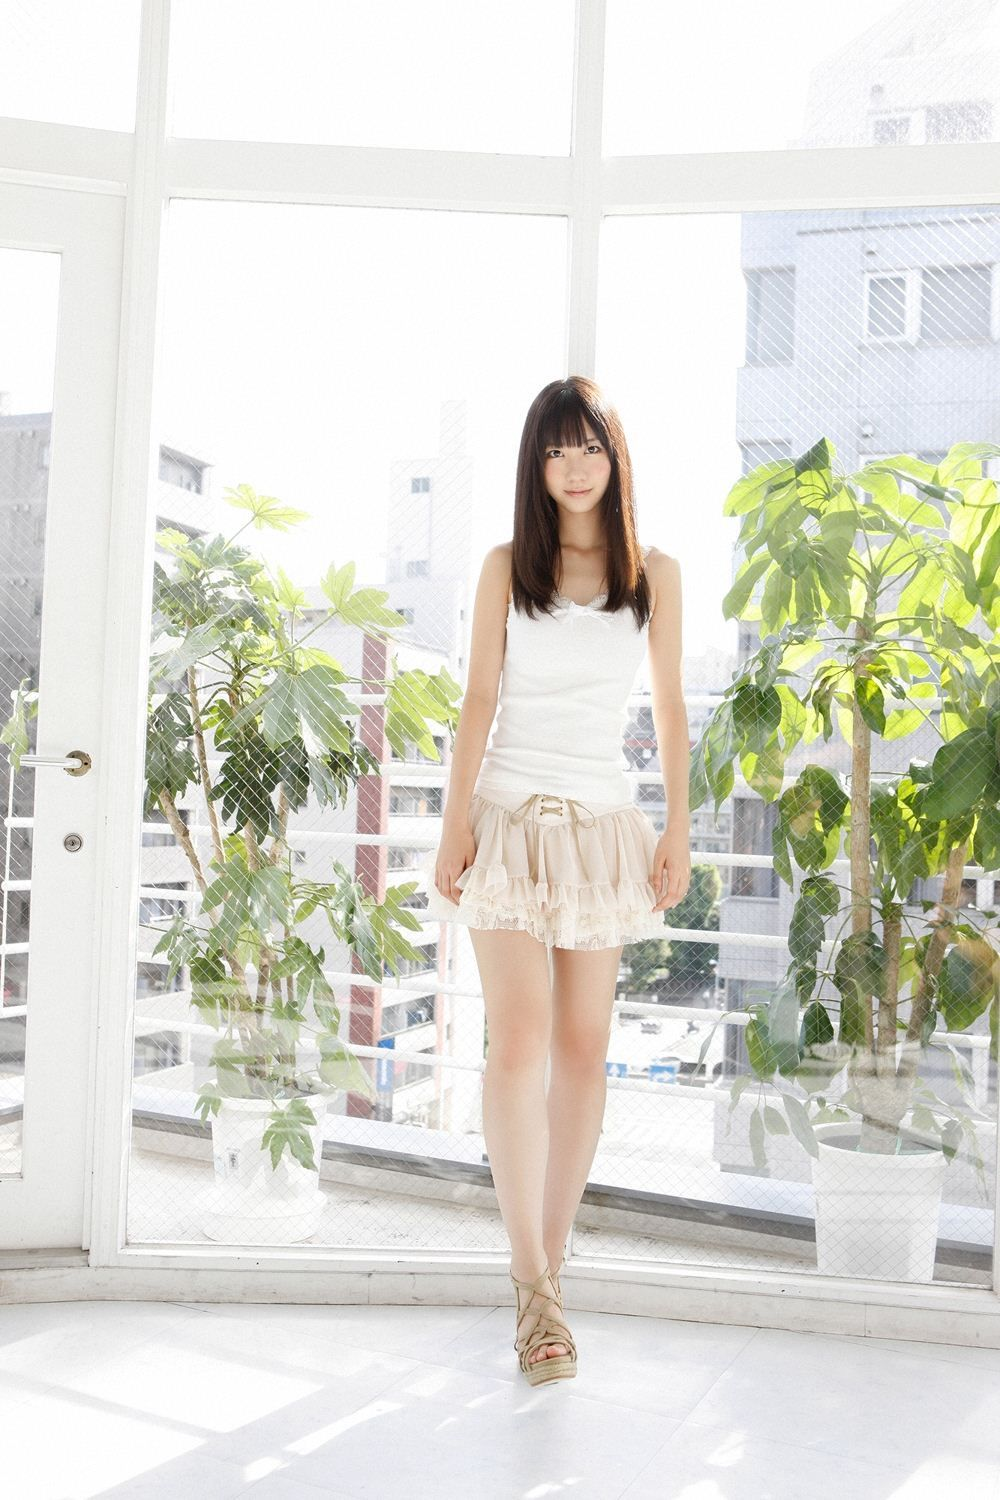 AKB48 柏木由紀 写真集 AKB Mini skirts, Dresses, Skirts